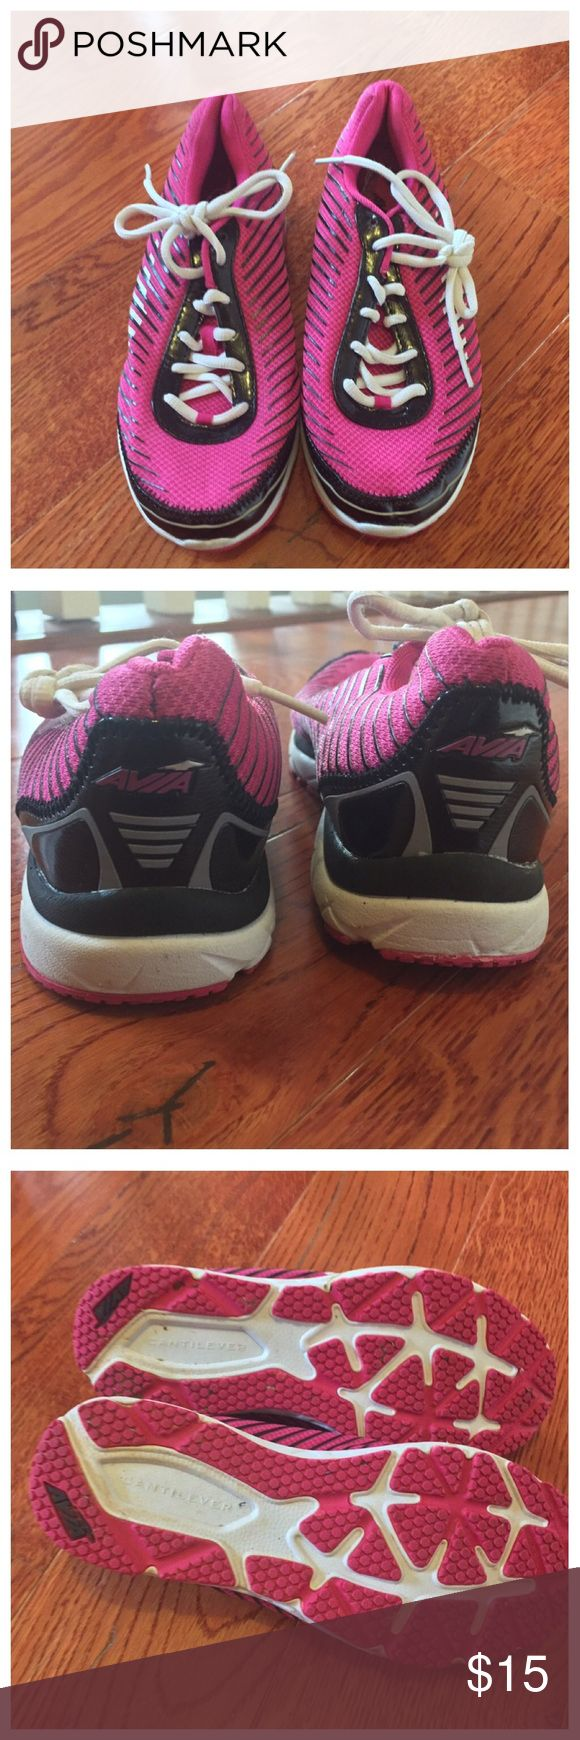 Avia Size 6 Women's Cantiliver Shoes In good preowned condition. No holes. No rips. No tears. Avia Shoes Athletic Shoes